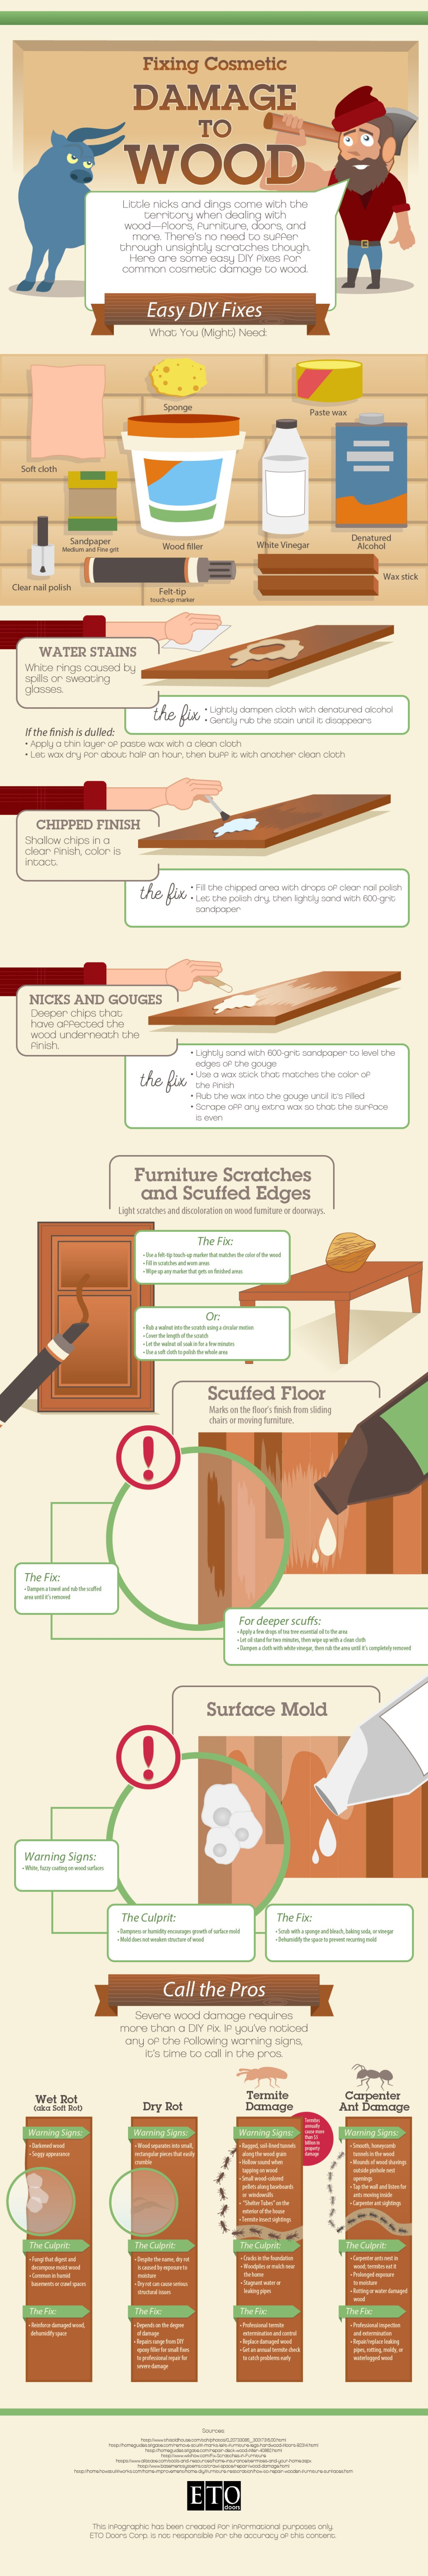 DIY Methods to Fix Superficial Damage to Wood - Infographic